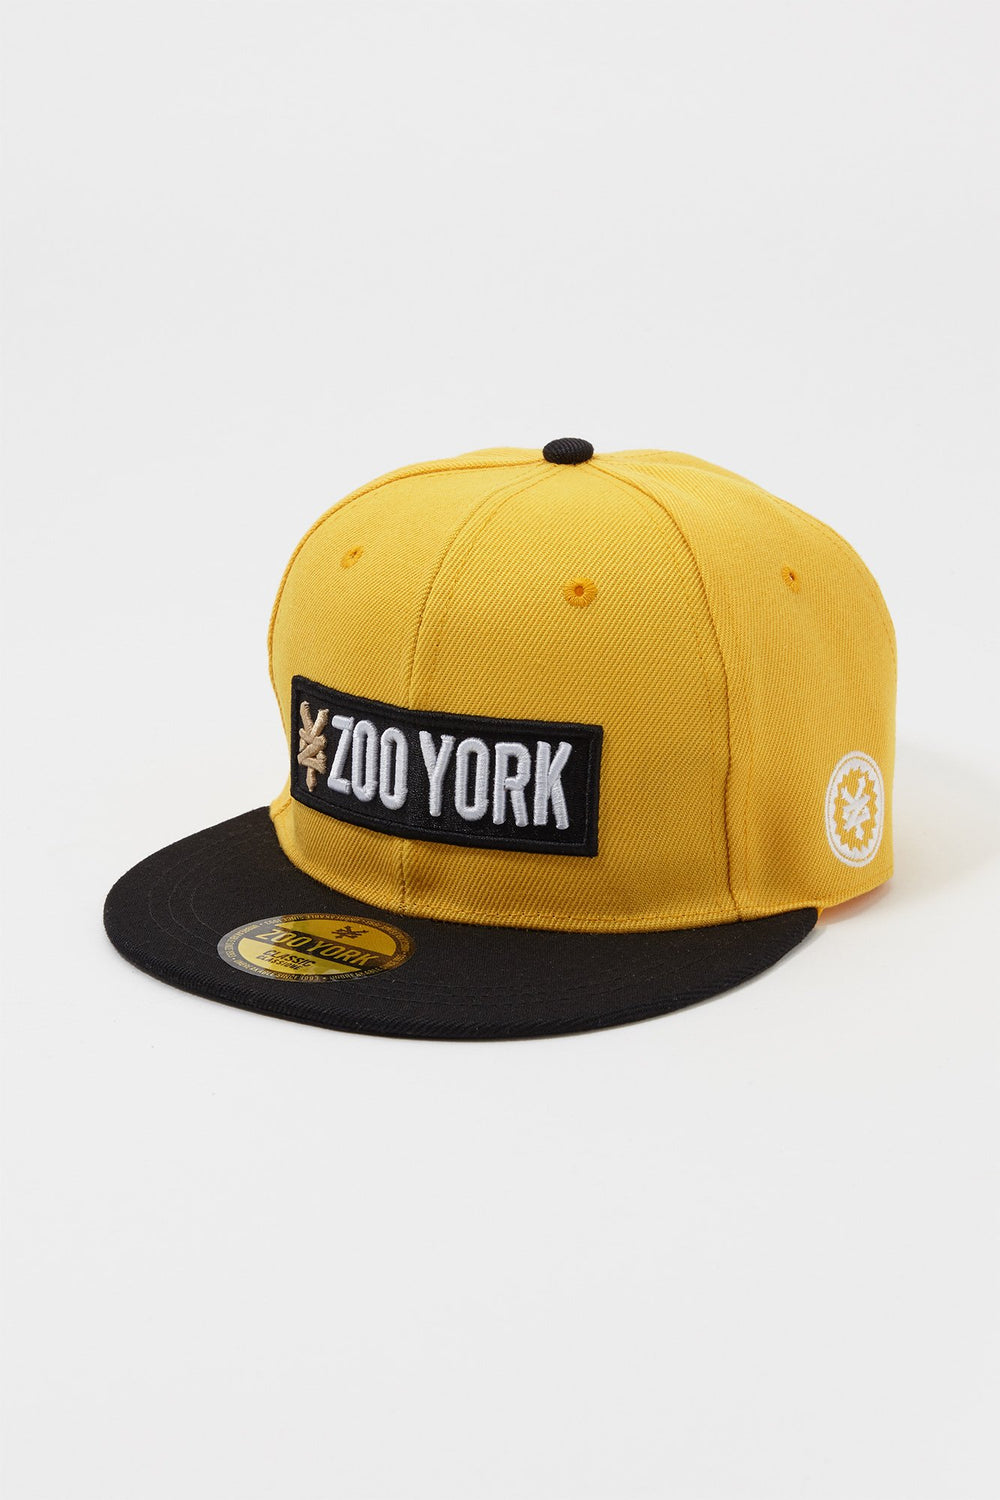 Zoo York Mens Box Logo Snapback Hat Mustard